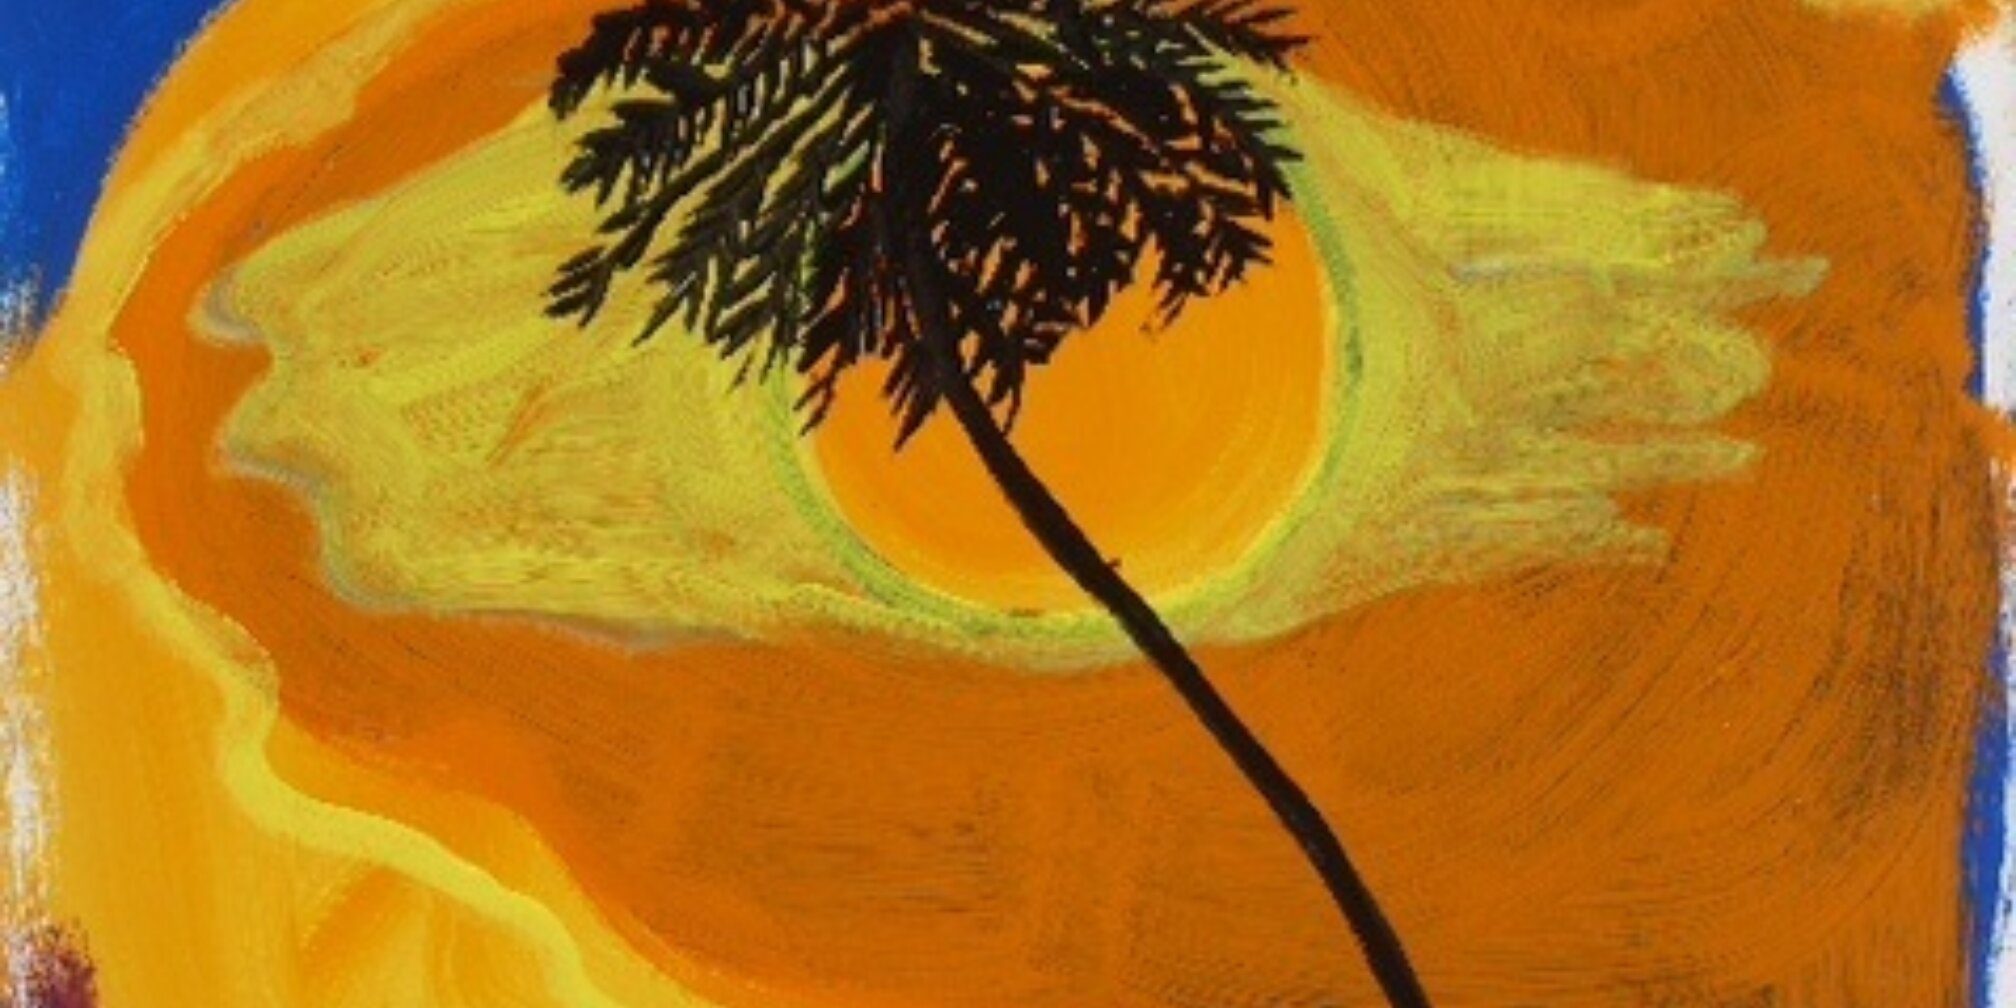 Families Create At Home: Painting Sunsets